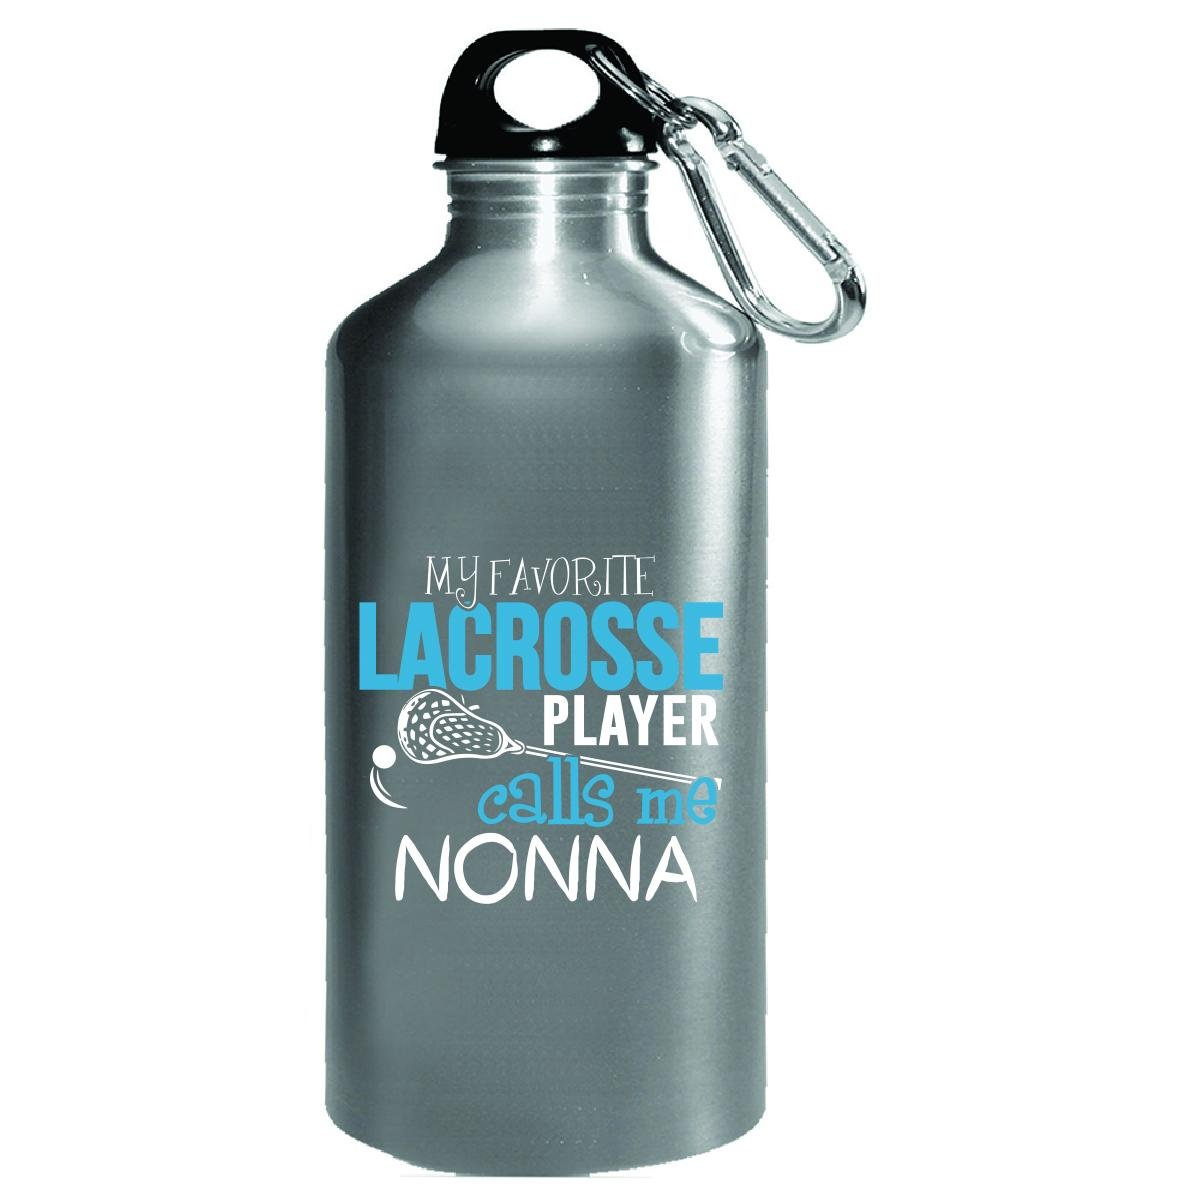 My Favorite Lacrosse Player Calls Me Nonna - Water Bottle